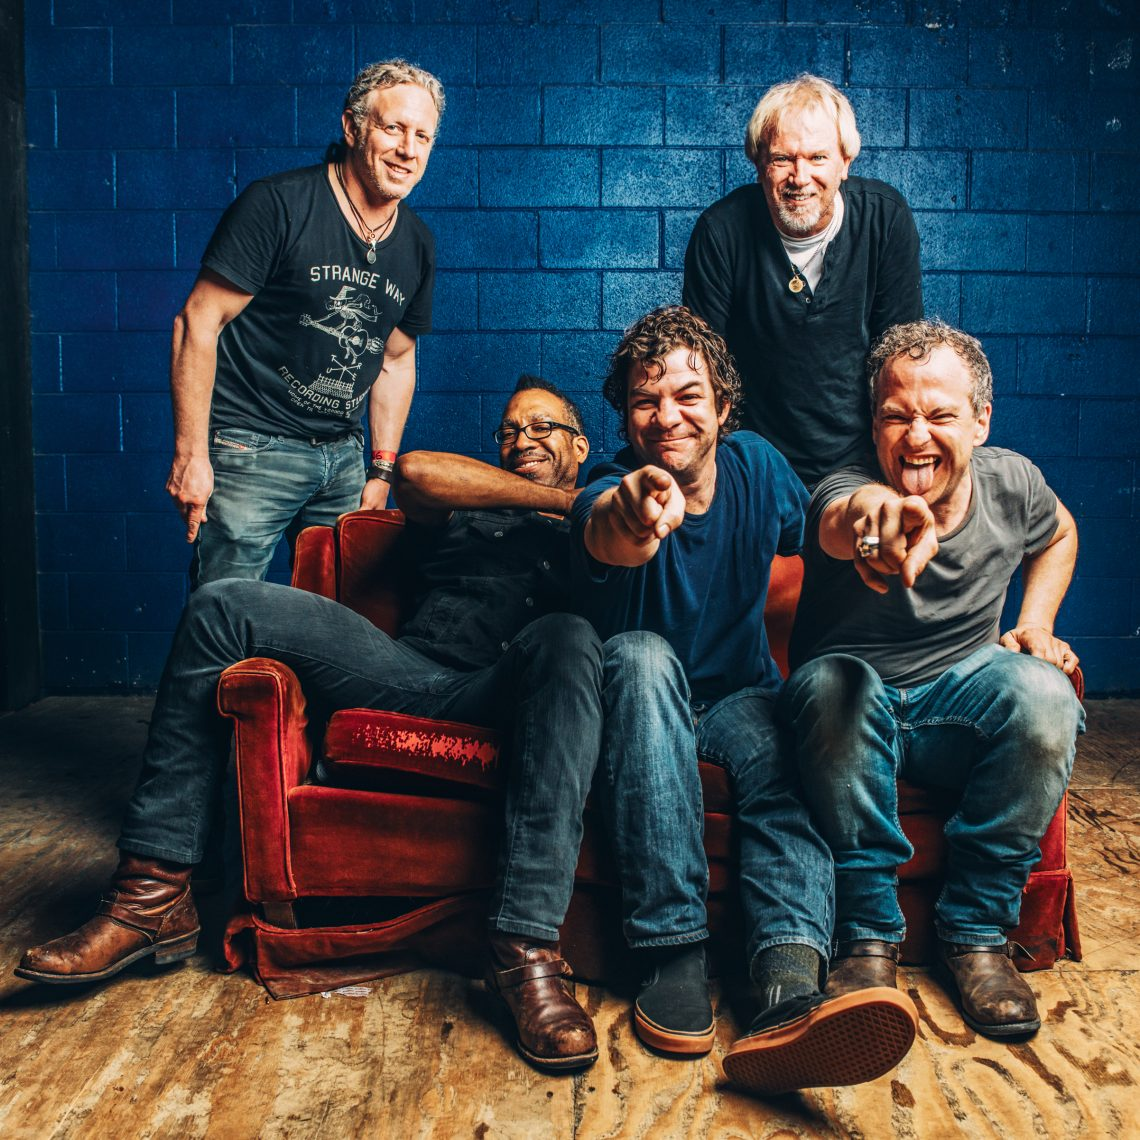 DEAN WEEN ALBUM: 'ROCK2' RELEASE DATE: APRIL 27th, 2018 SINGLE: DON'T LET THE MOON CATCH YOU CRYING' RELEASE DATE: MARCH 9th, 2018